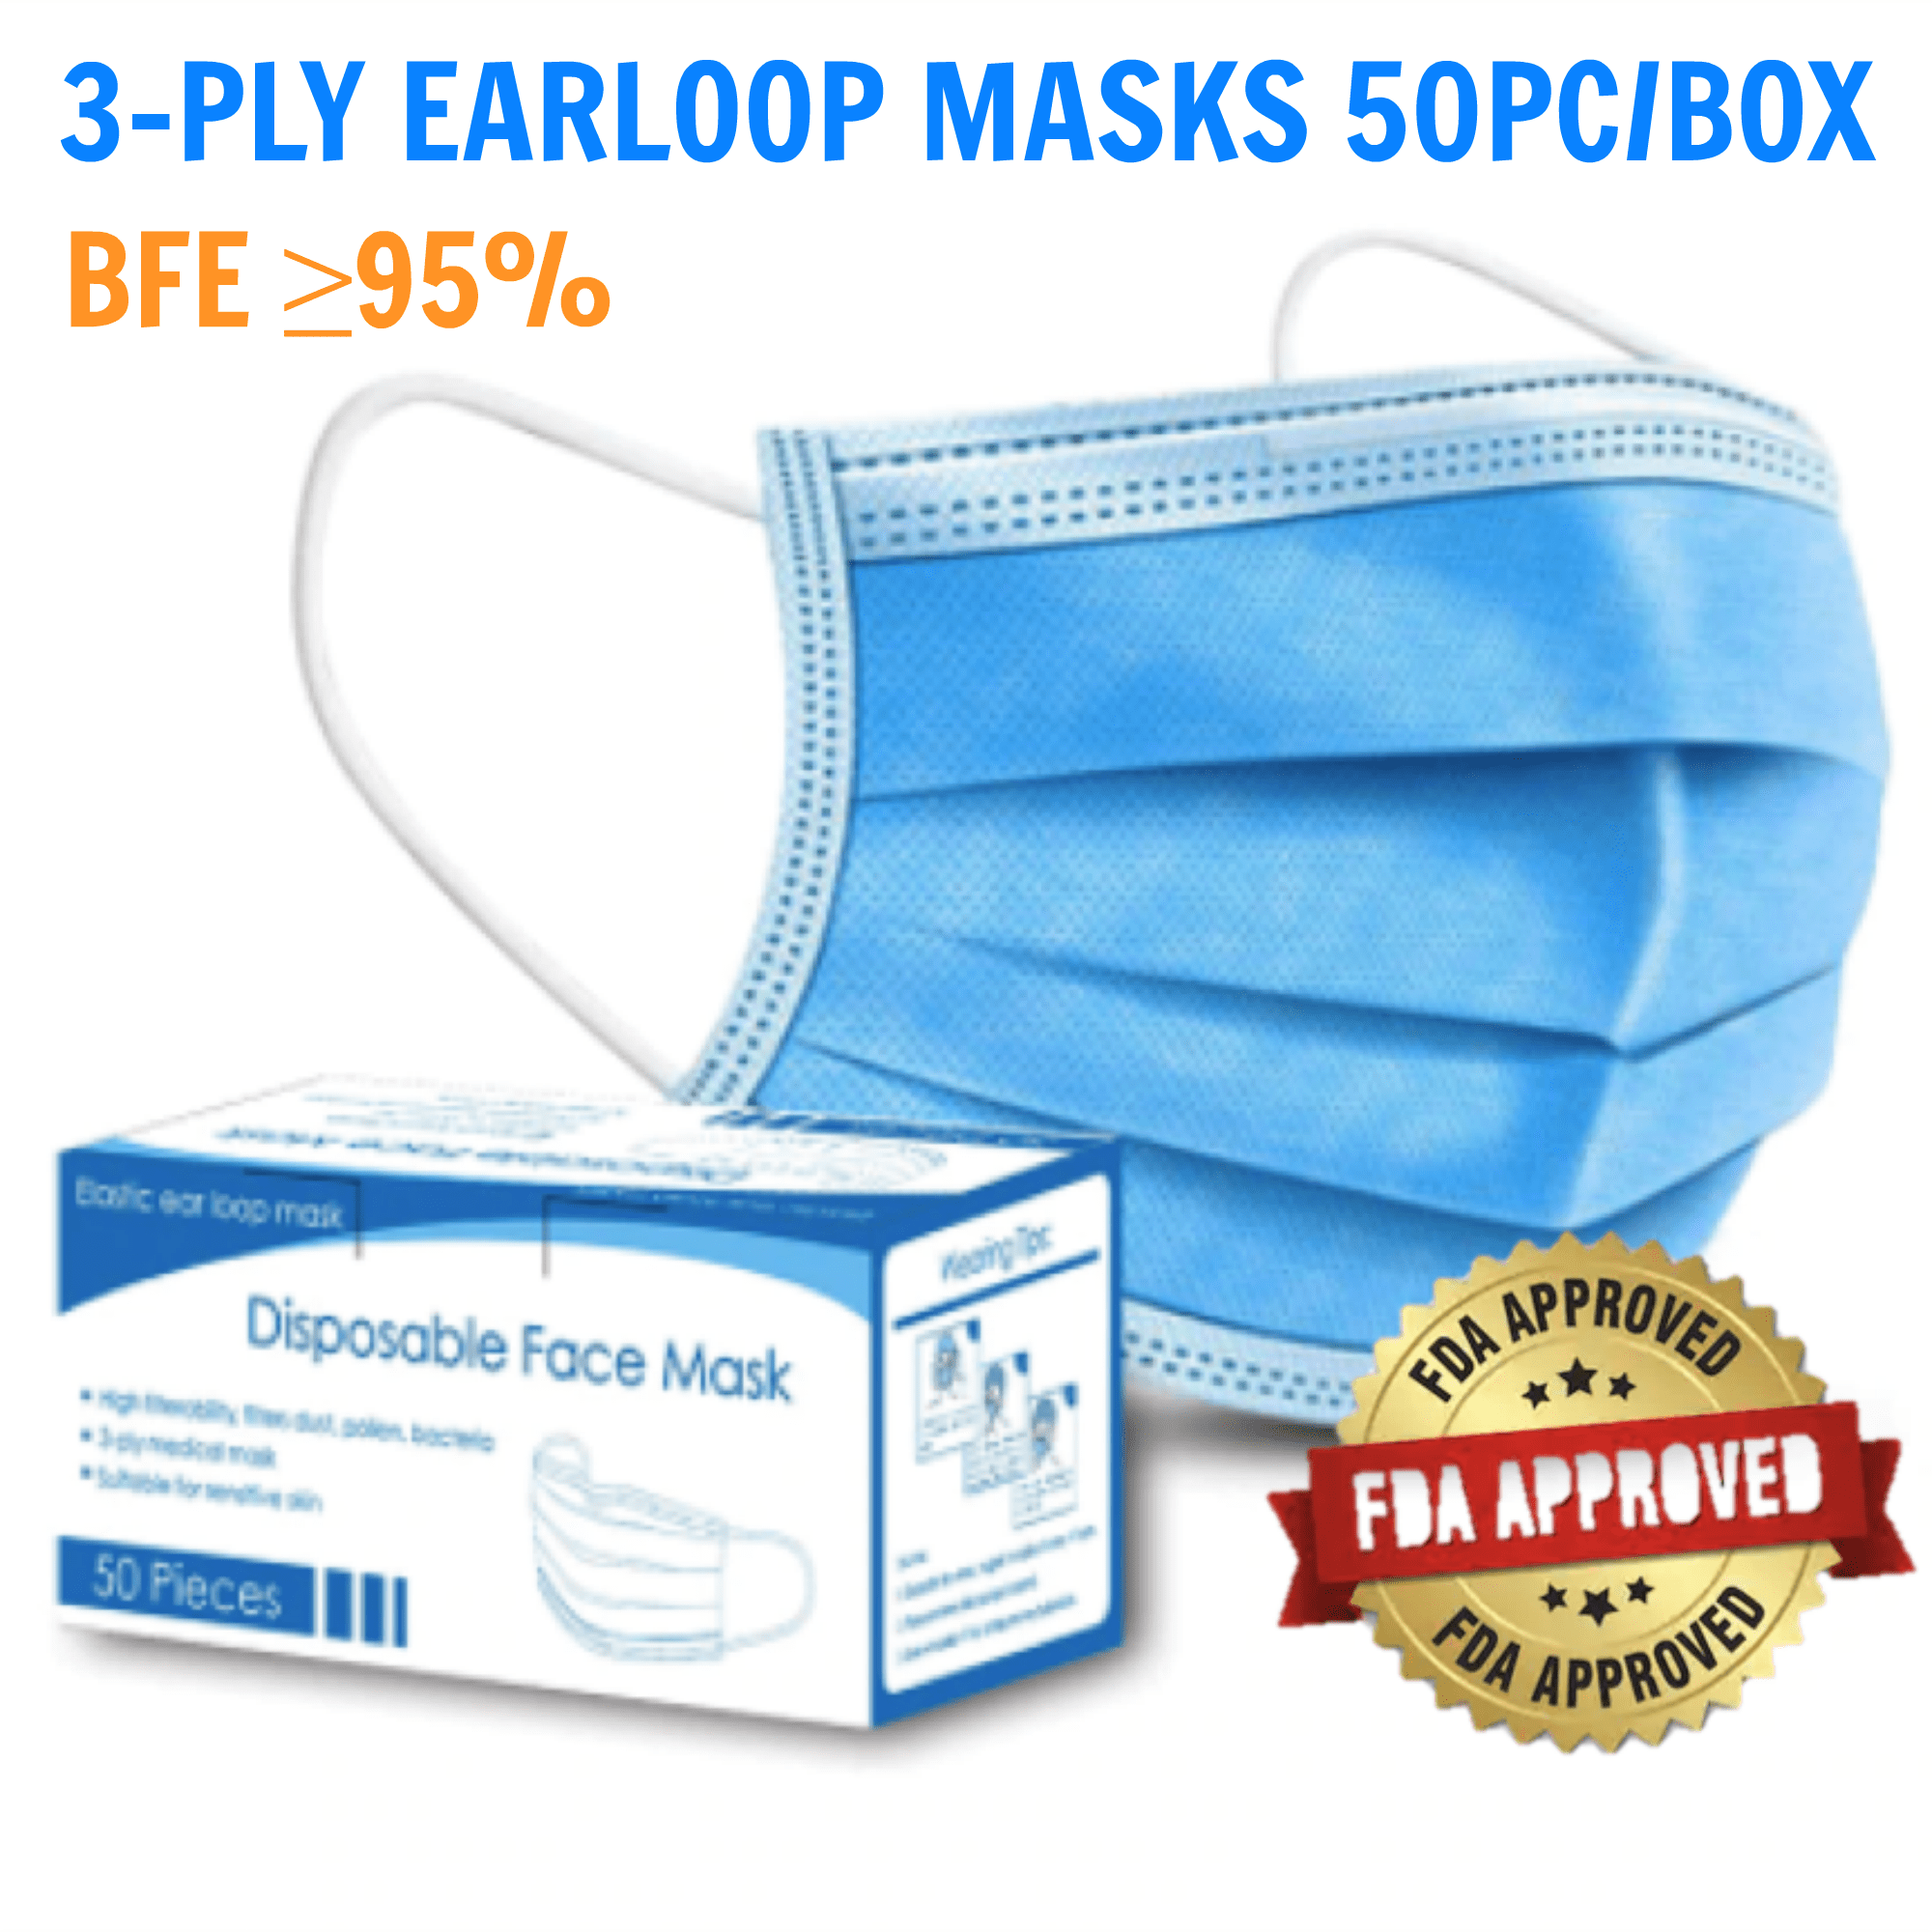 50pc/box Certified 3-Ply Earloop Disposable Masks with BFE ≥95%